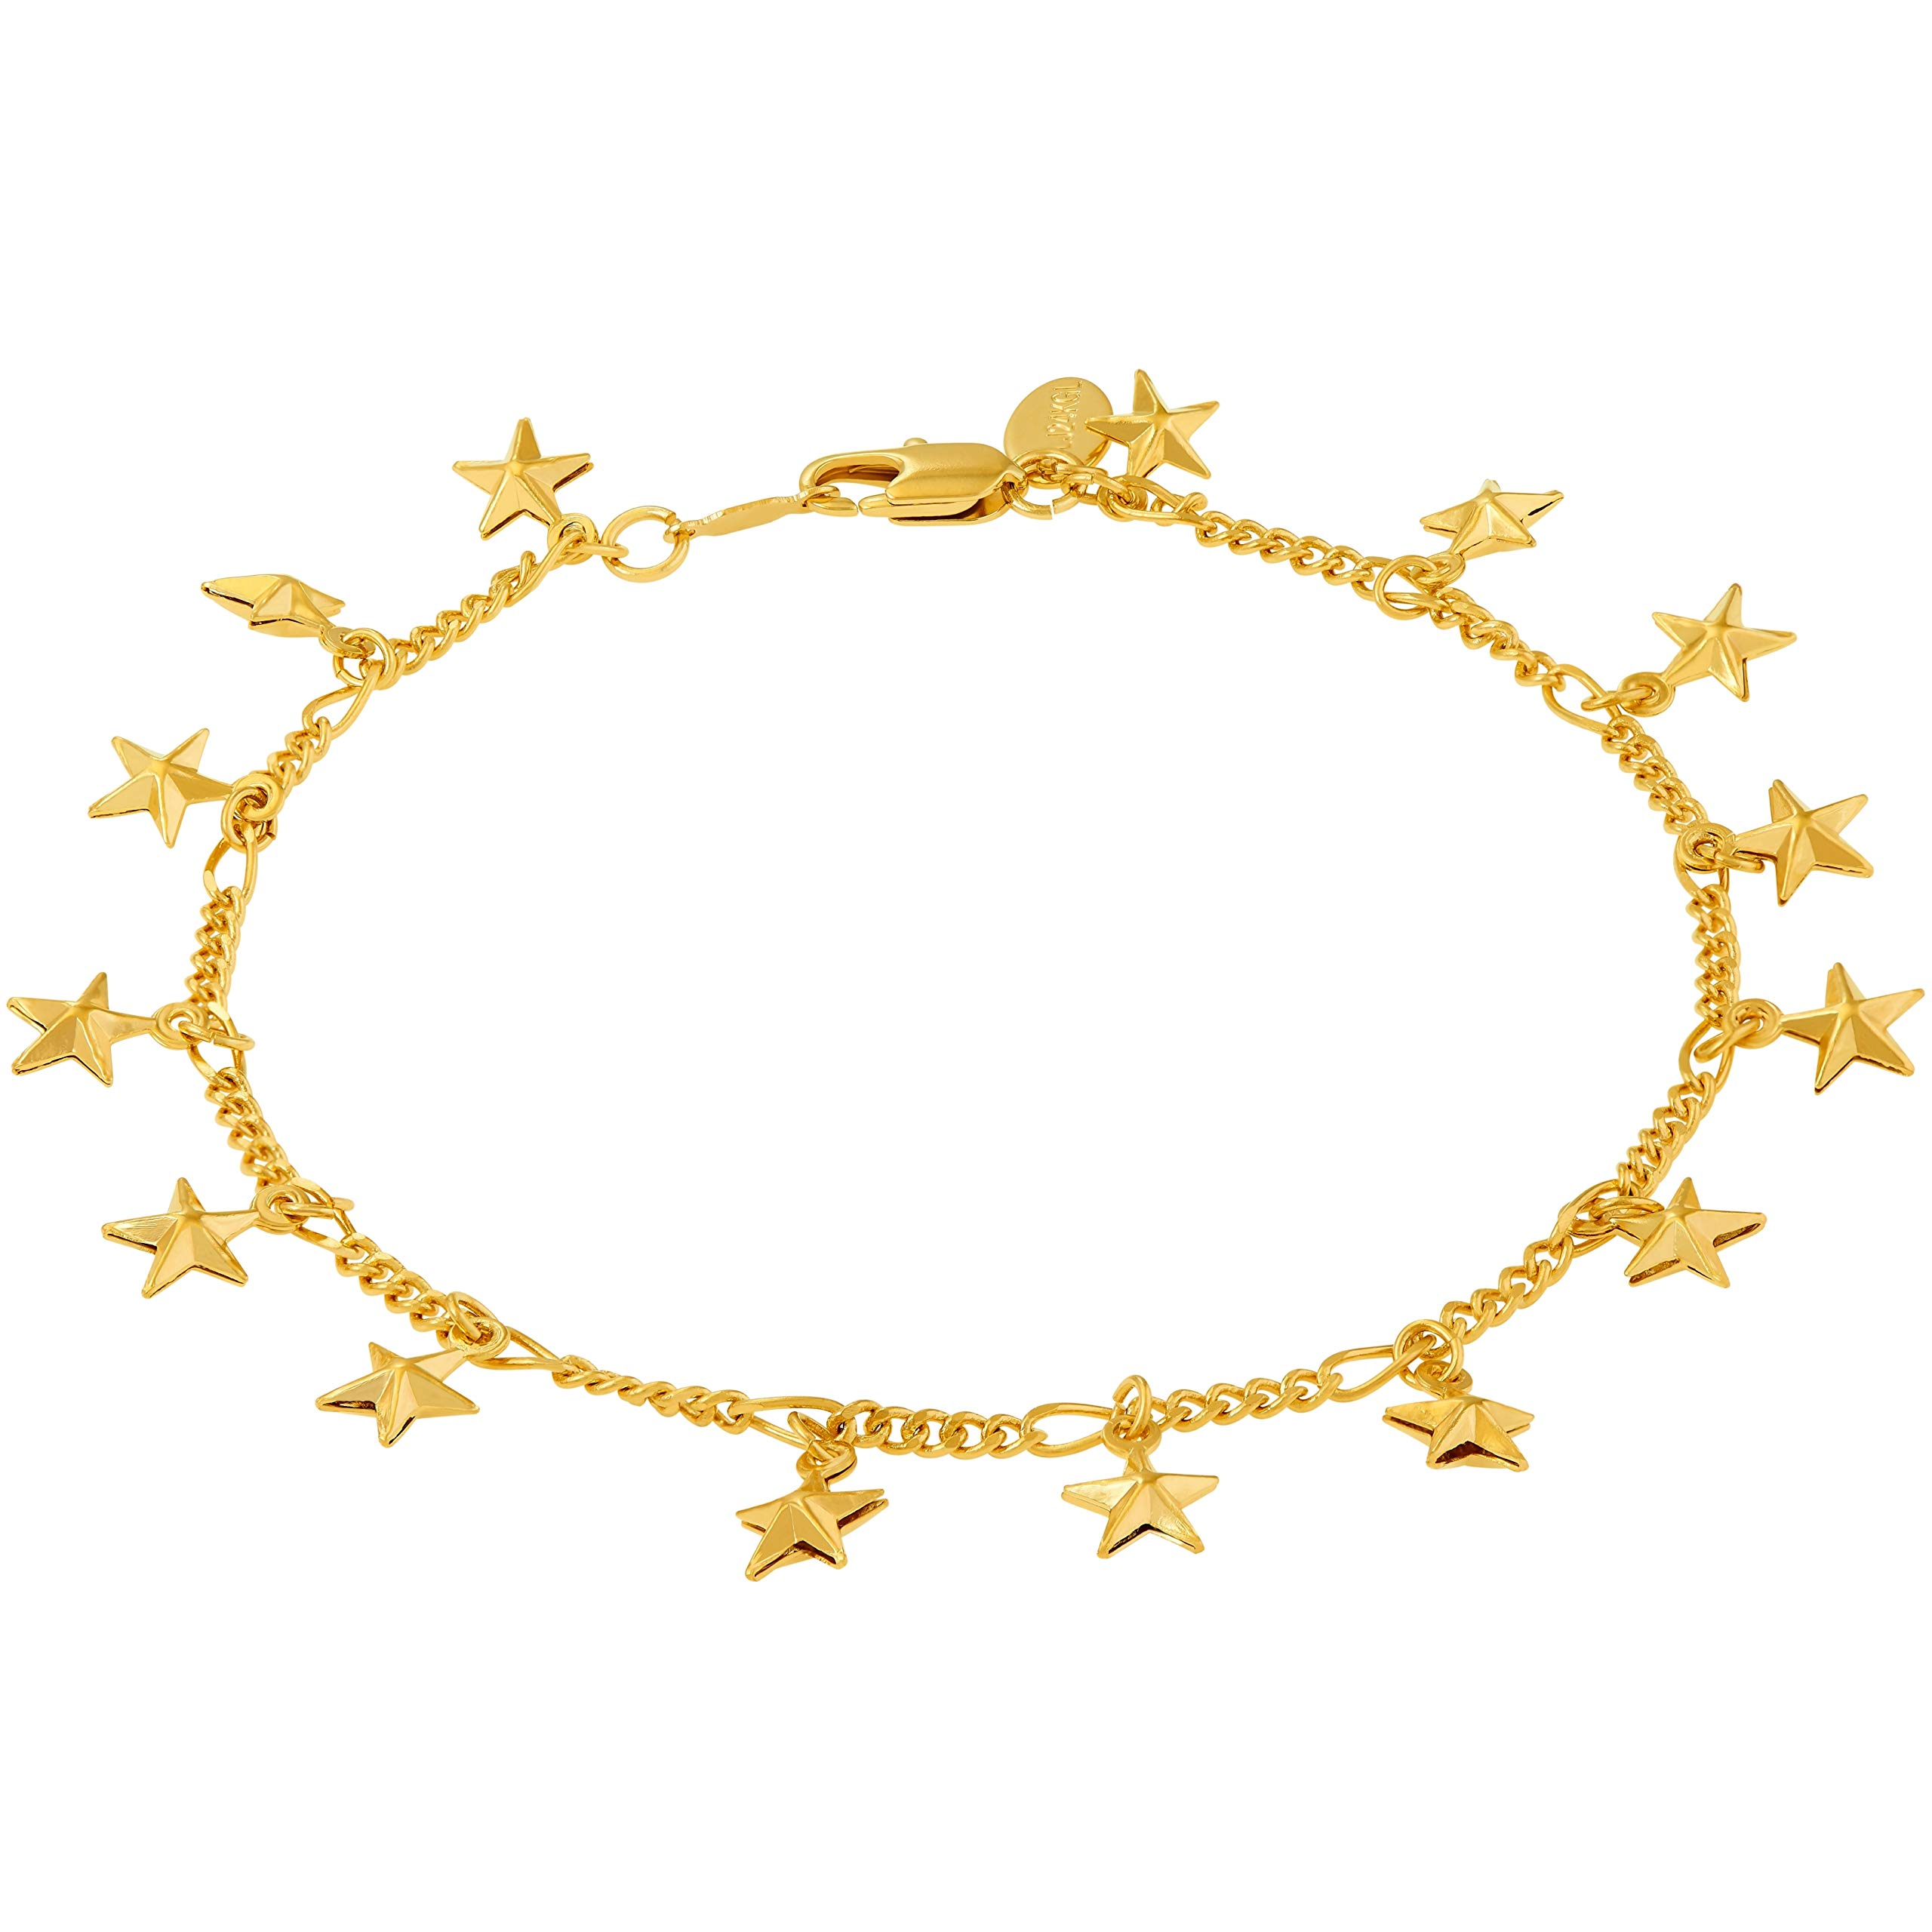 Lifetime Jewelry Anklets for Women Men and Teen Girls - 24K Gold Plated Chain with Dangling Stars - Ankle Bracelet to Wear at Beach or Party - Cute Surfer Anklet - 9 10 and 11 inches (9)